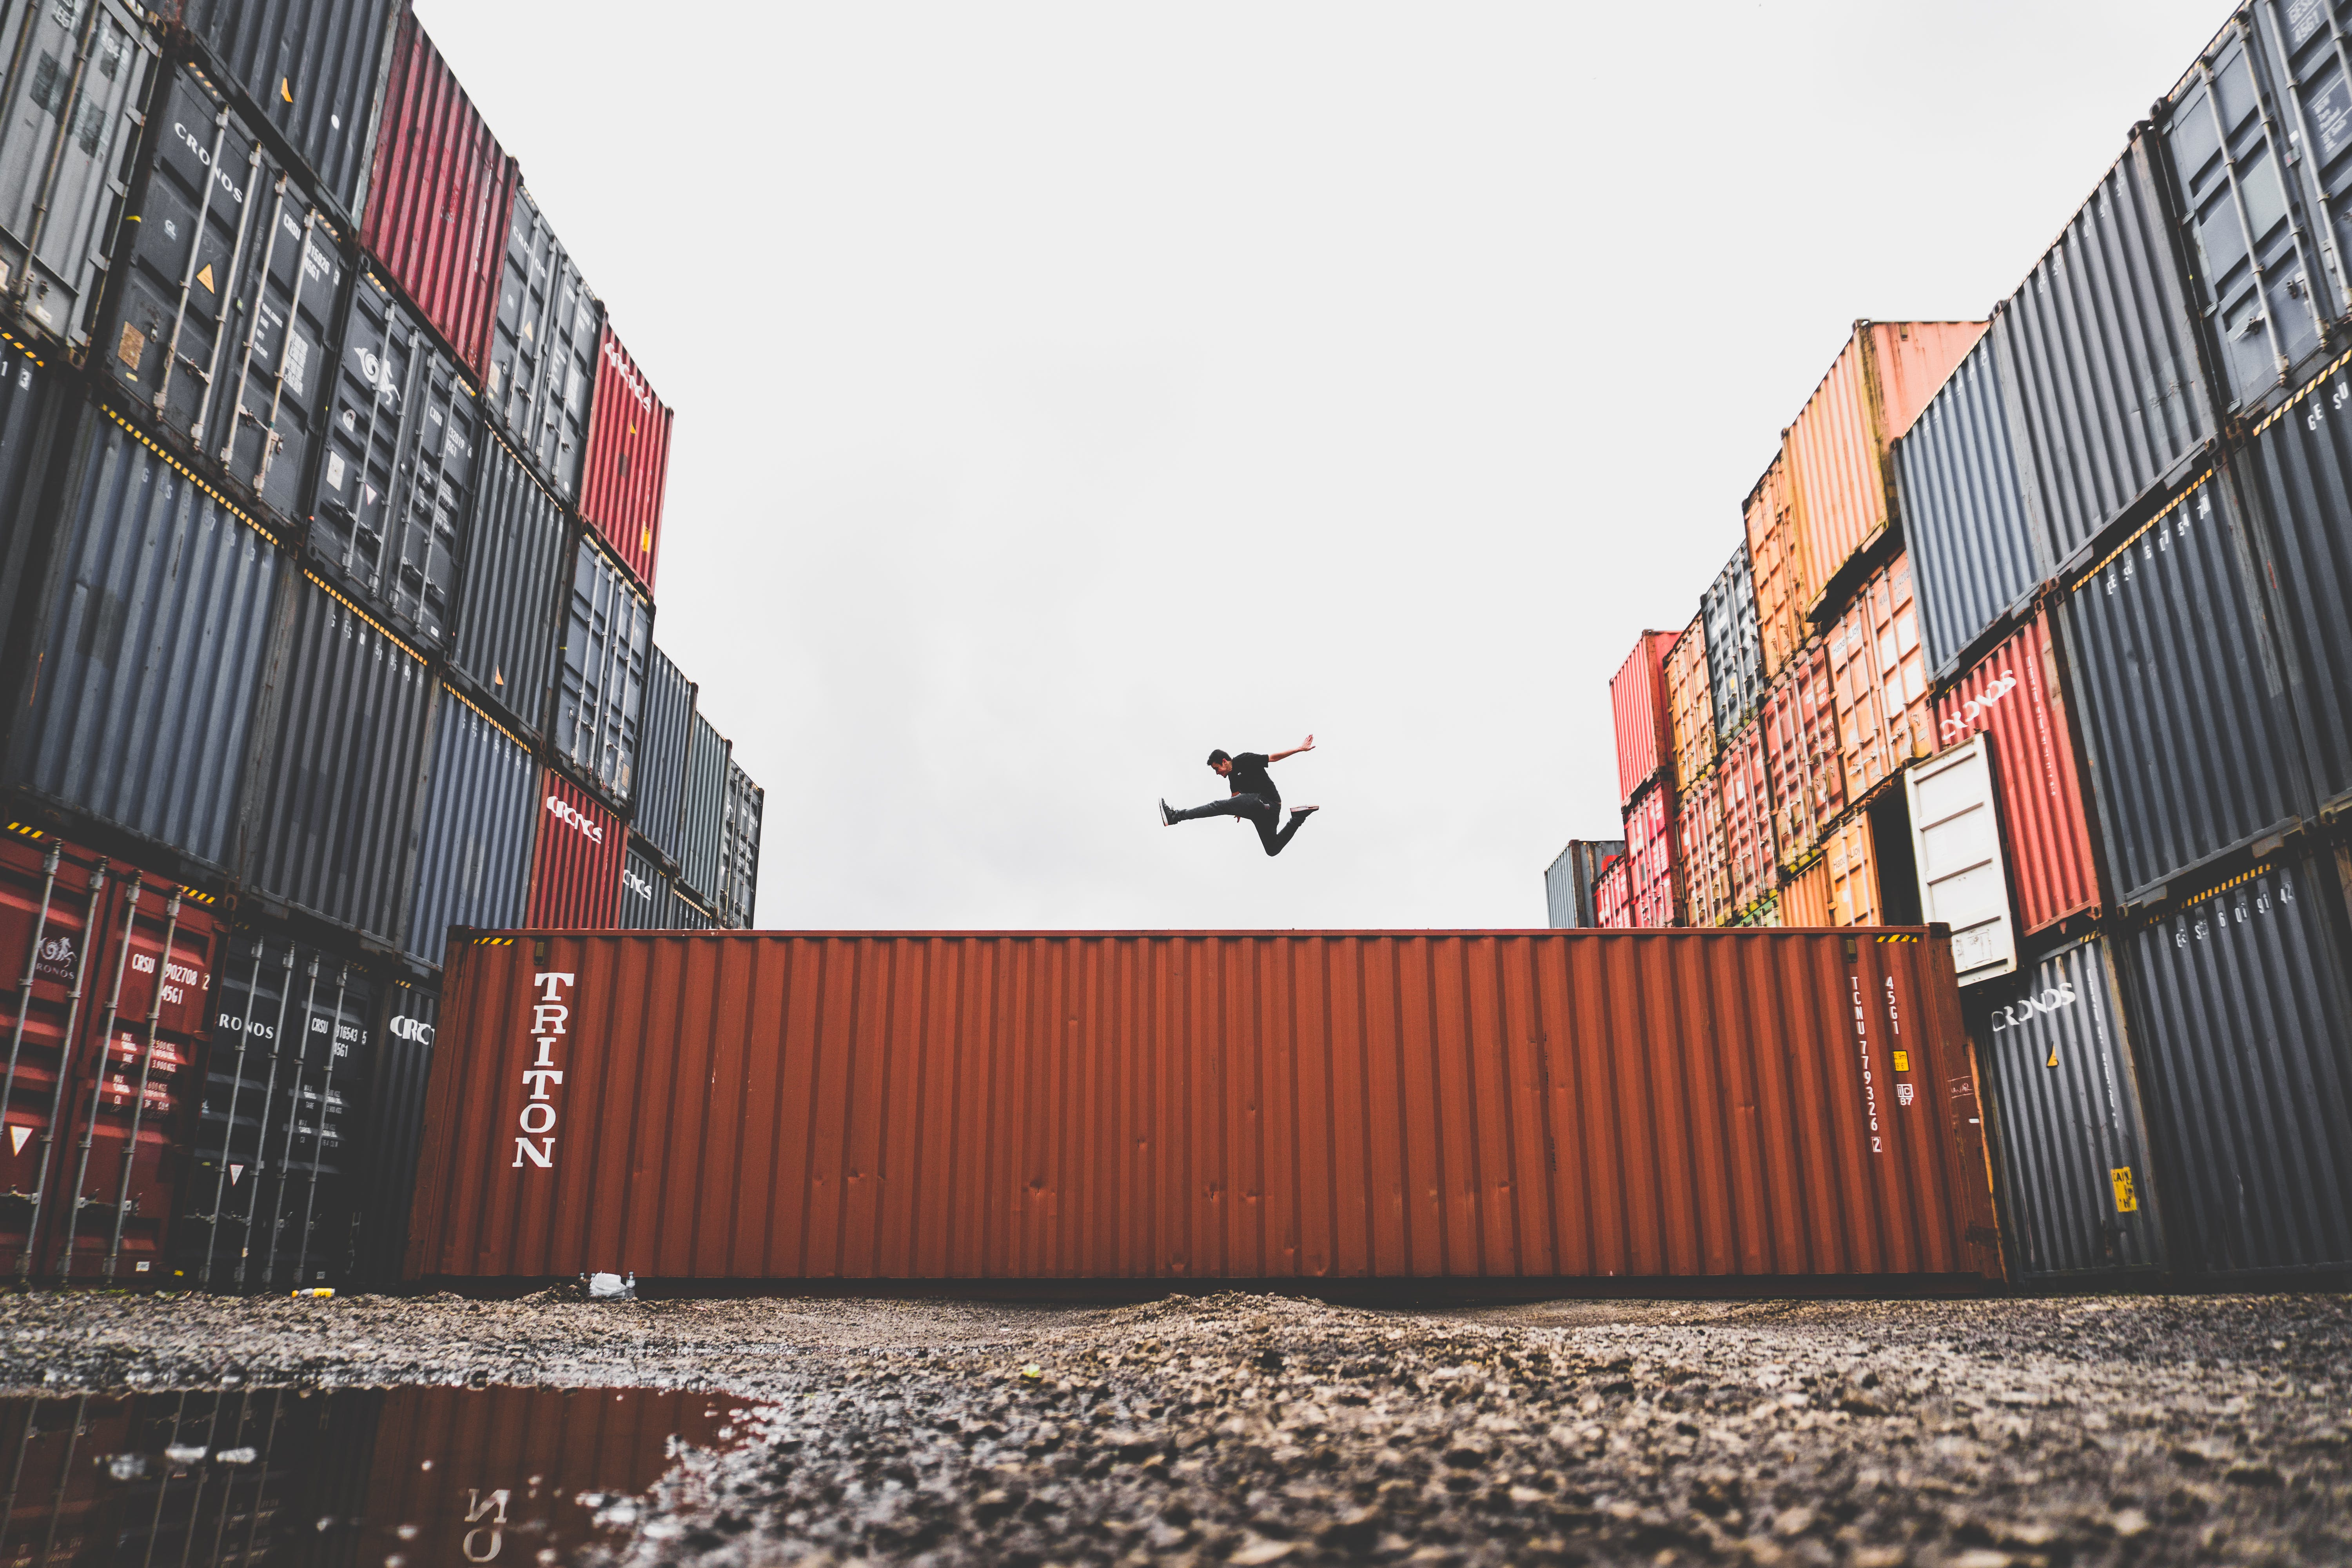 Man Jumping on Intermodal Container